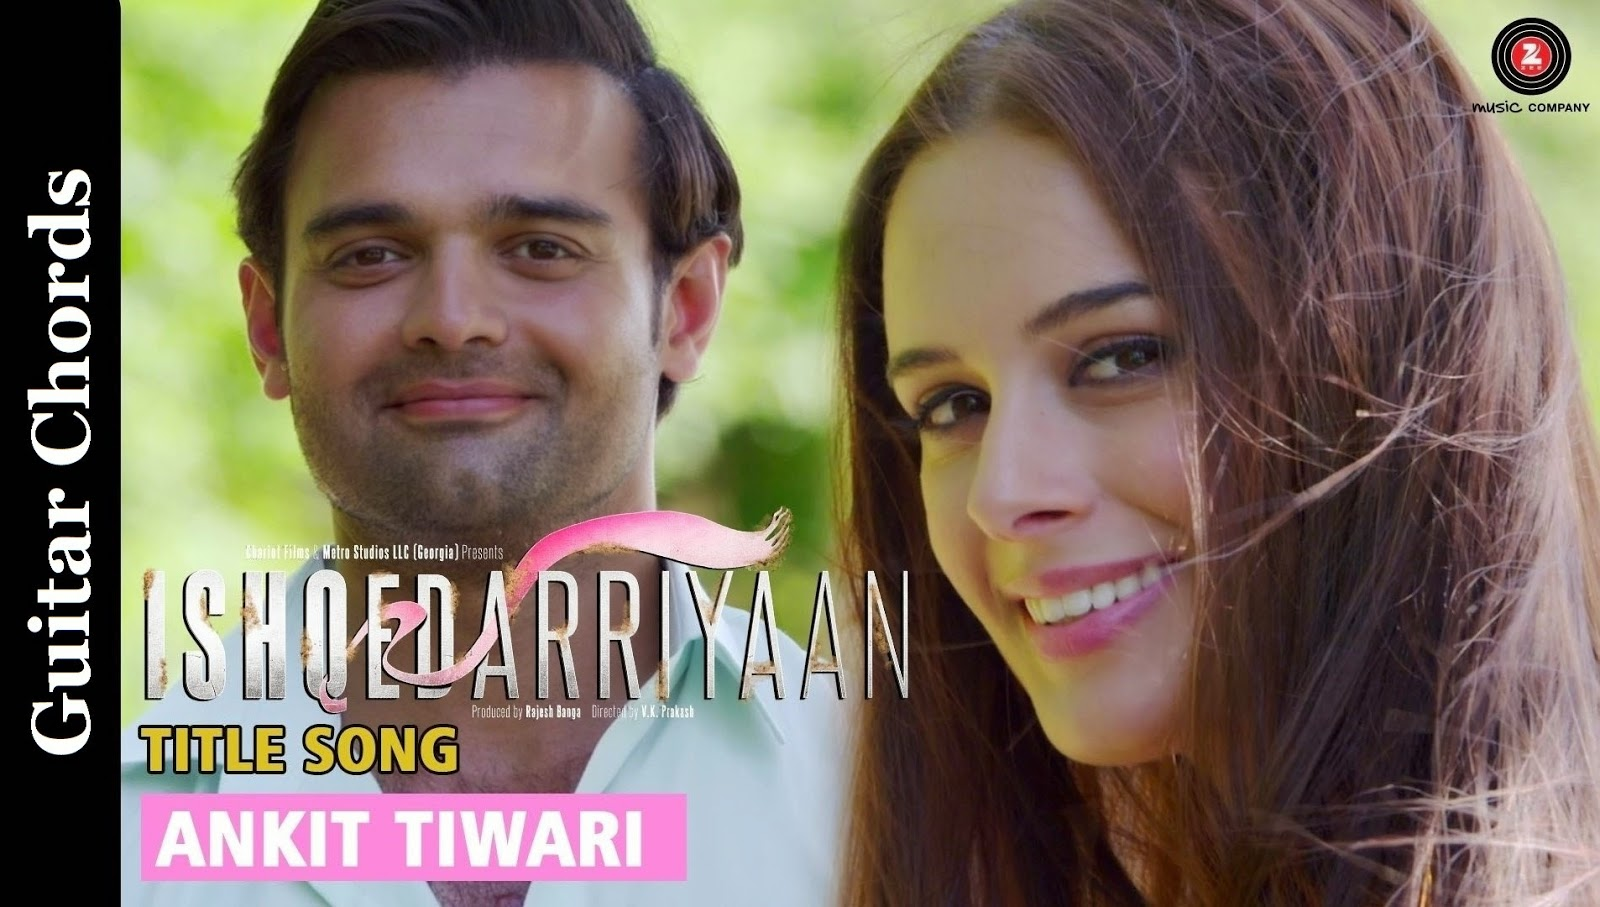 Ishqedarriyaan Title Song by Ankit Tiwari